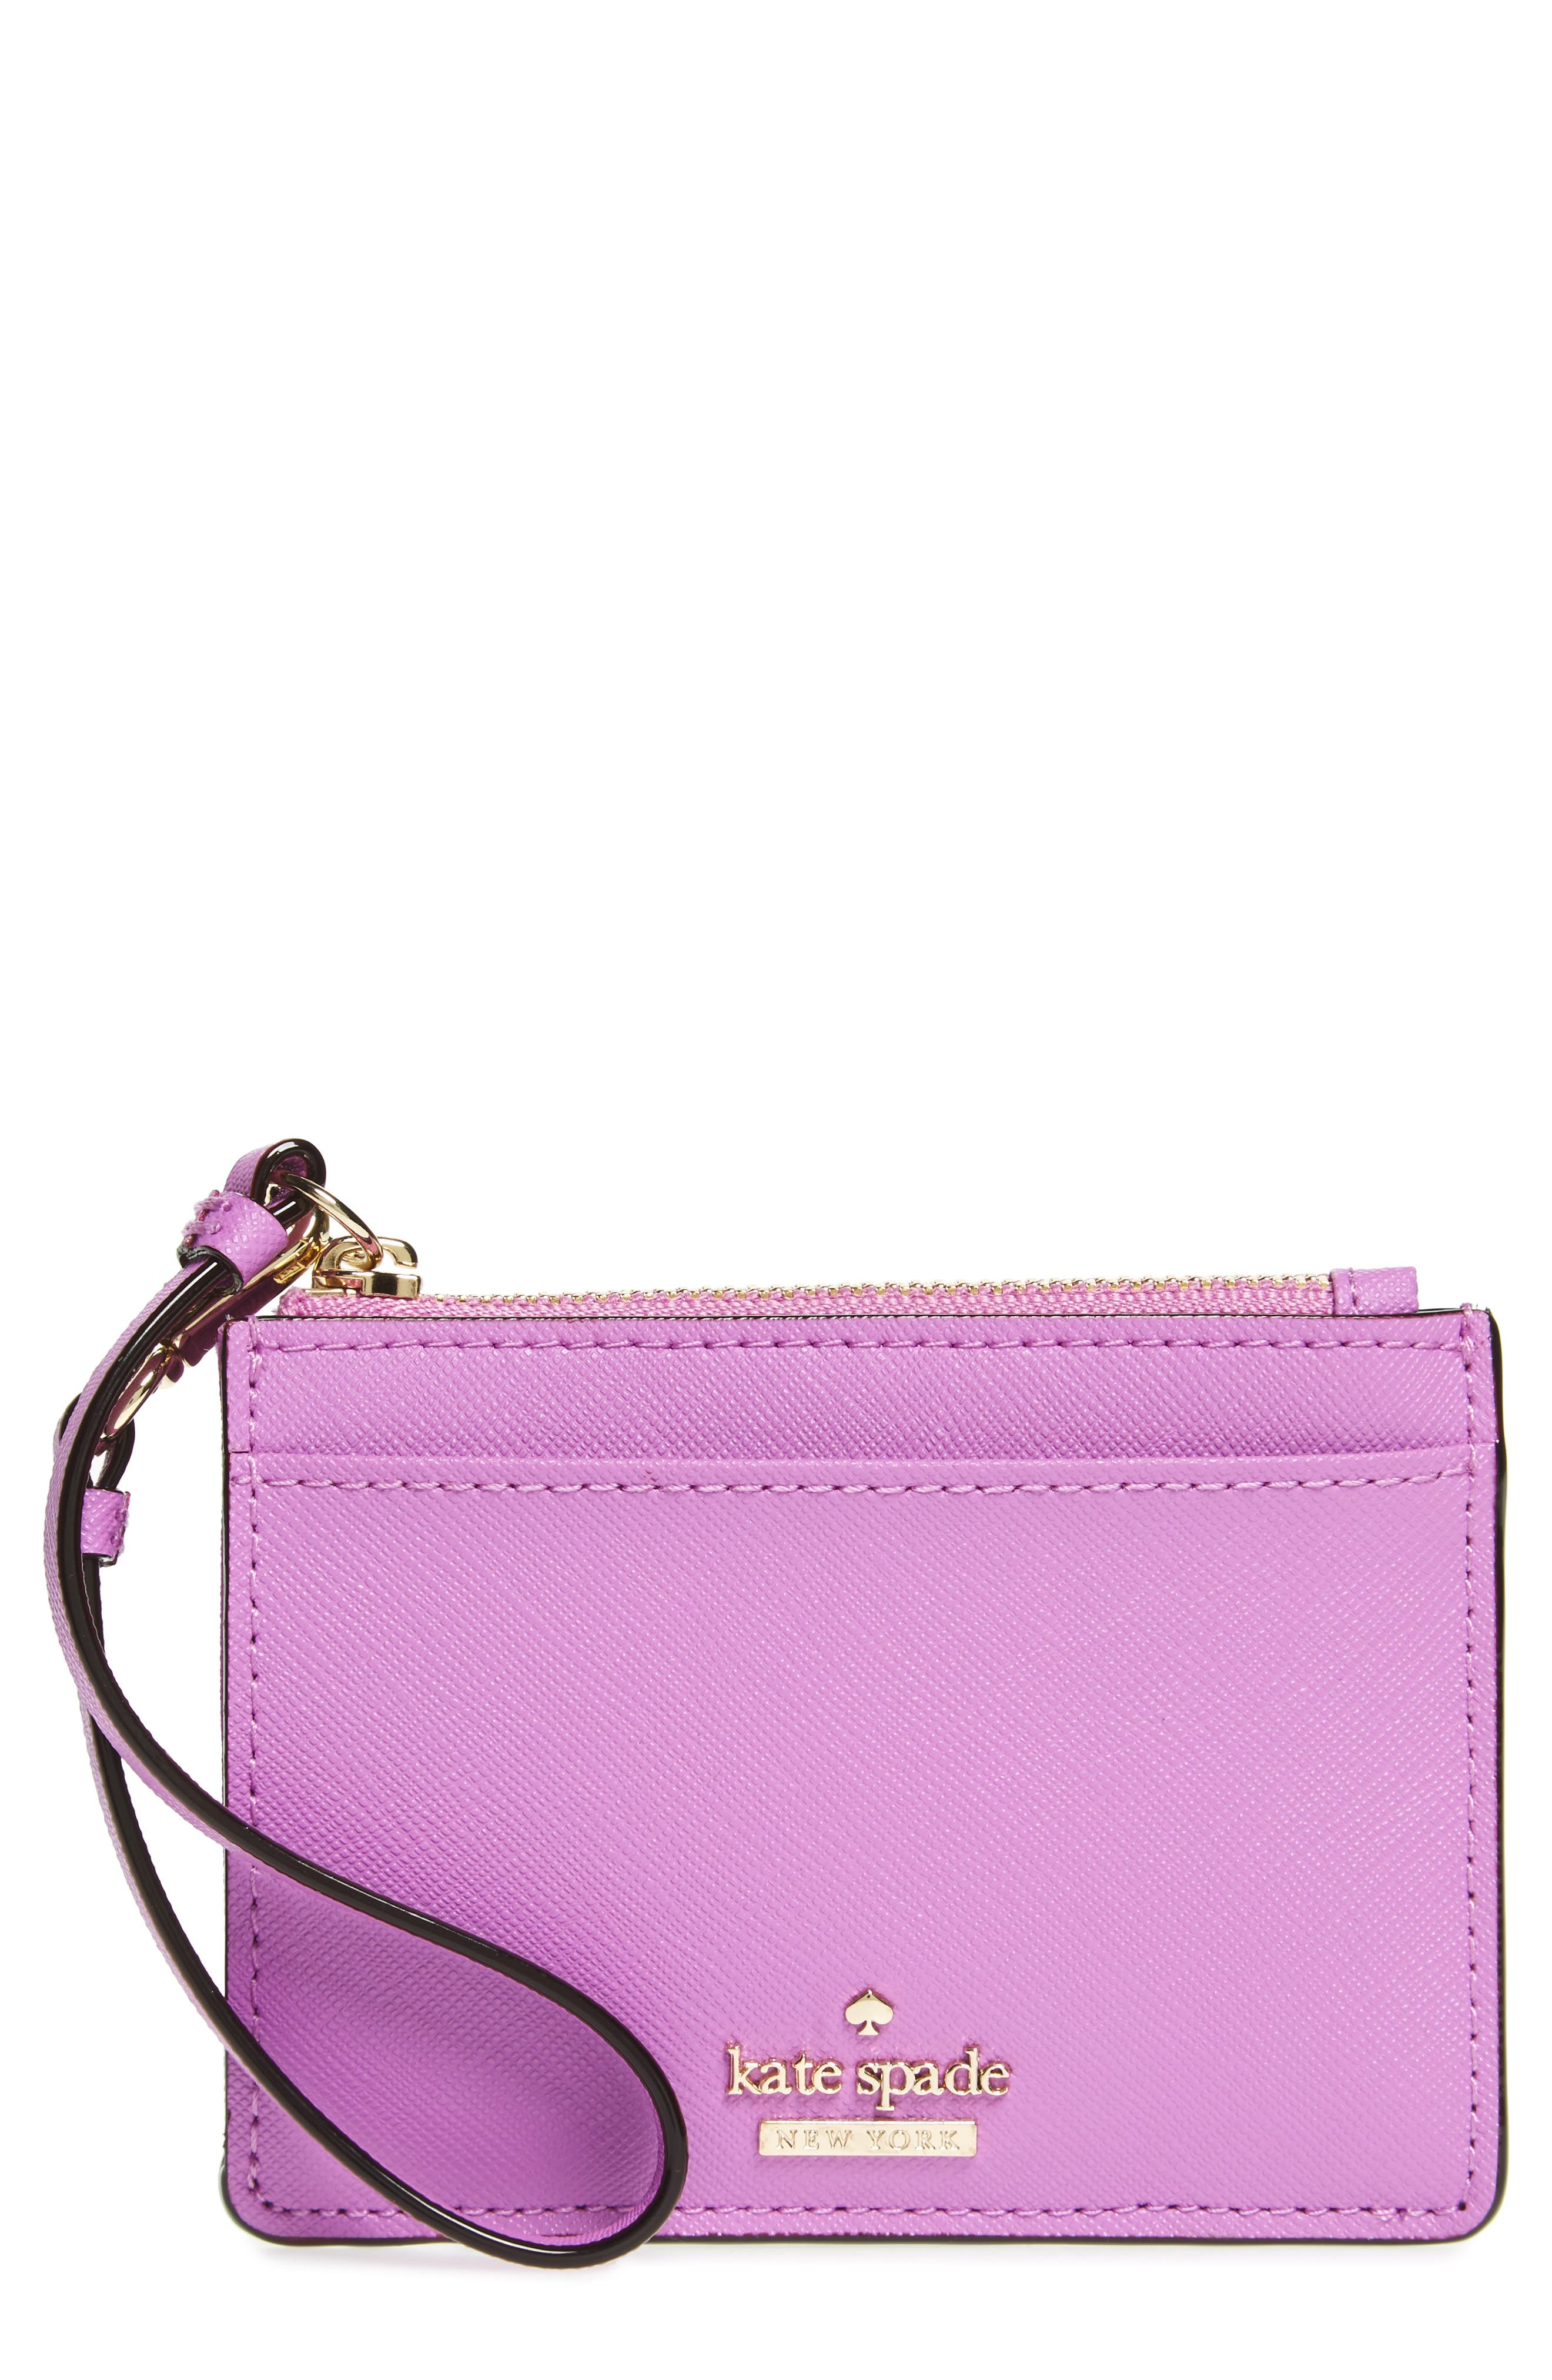 kate spade new york cameron street - mellody leather card case